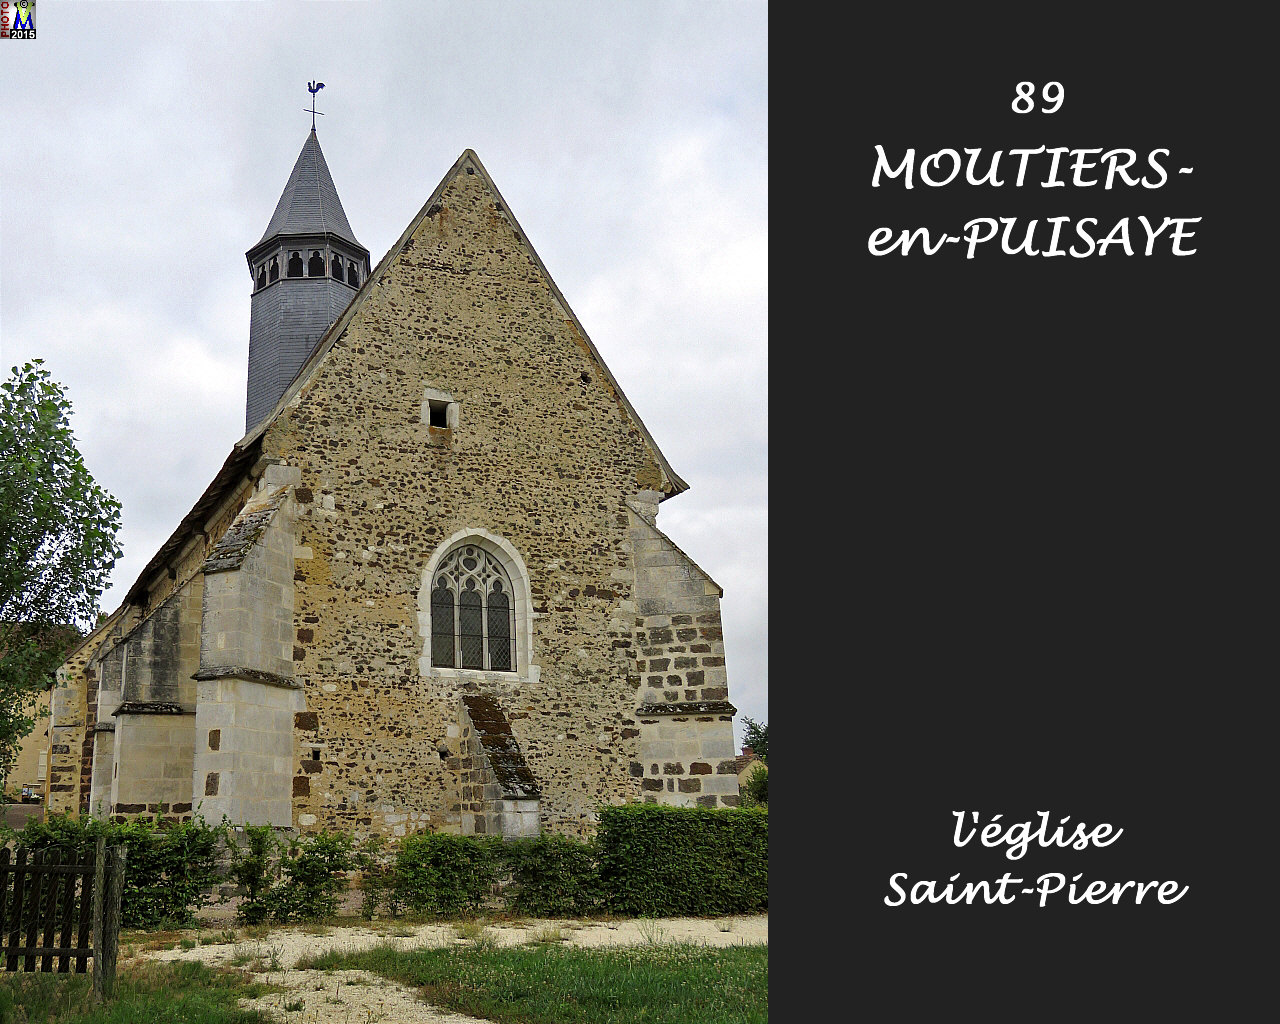 89MOUTIERS-PUISAYE_eglise_106.jpg